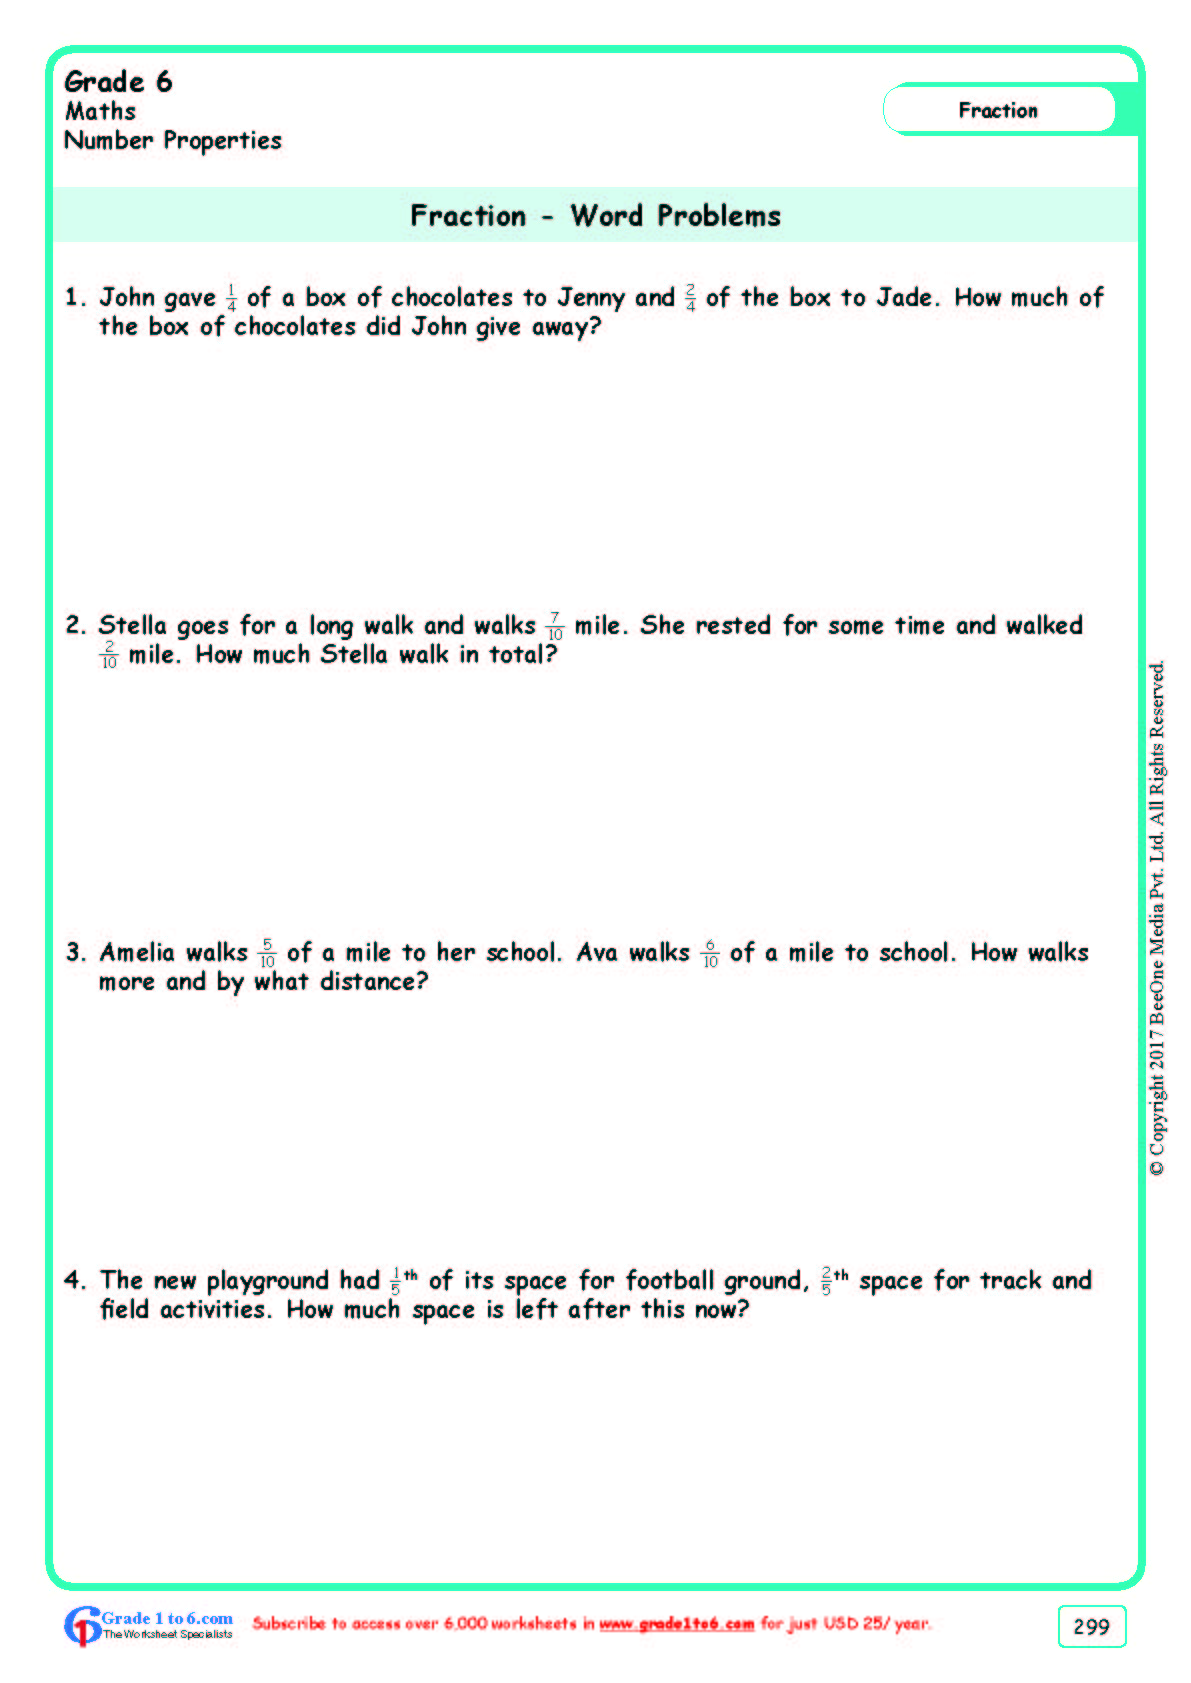 hight resolution of Grade 6 Word Problems Worksheets www.grade1to6.com